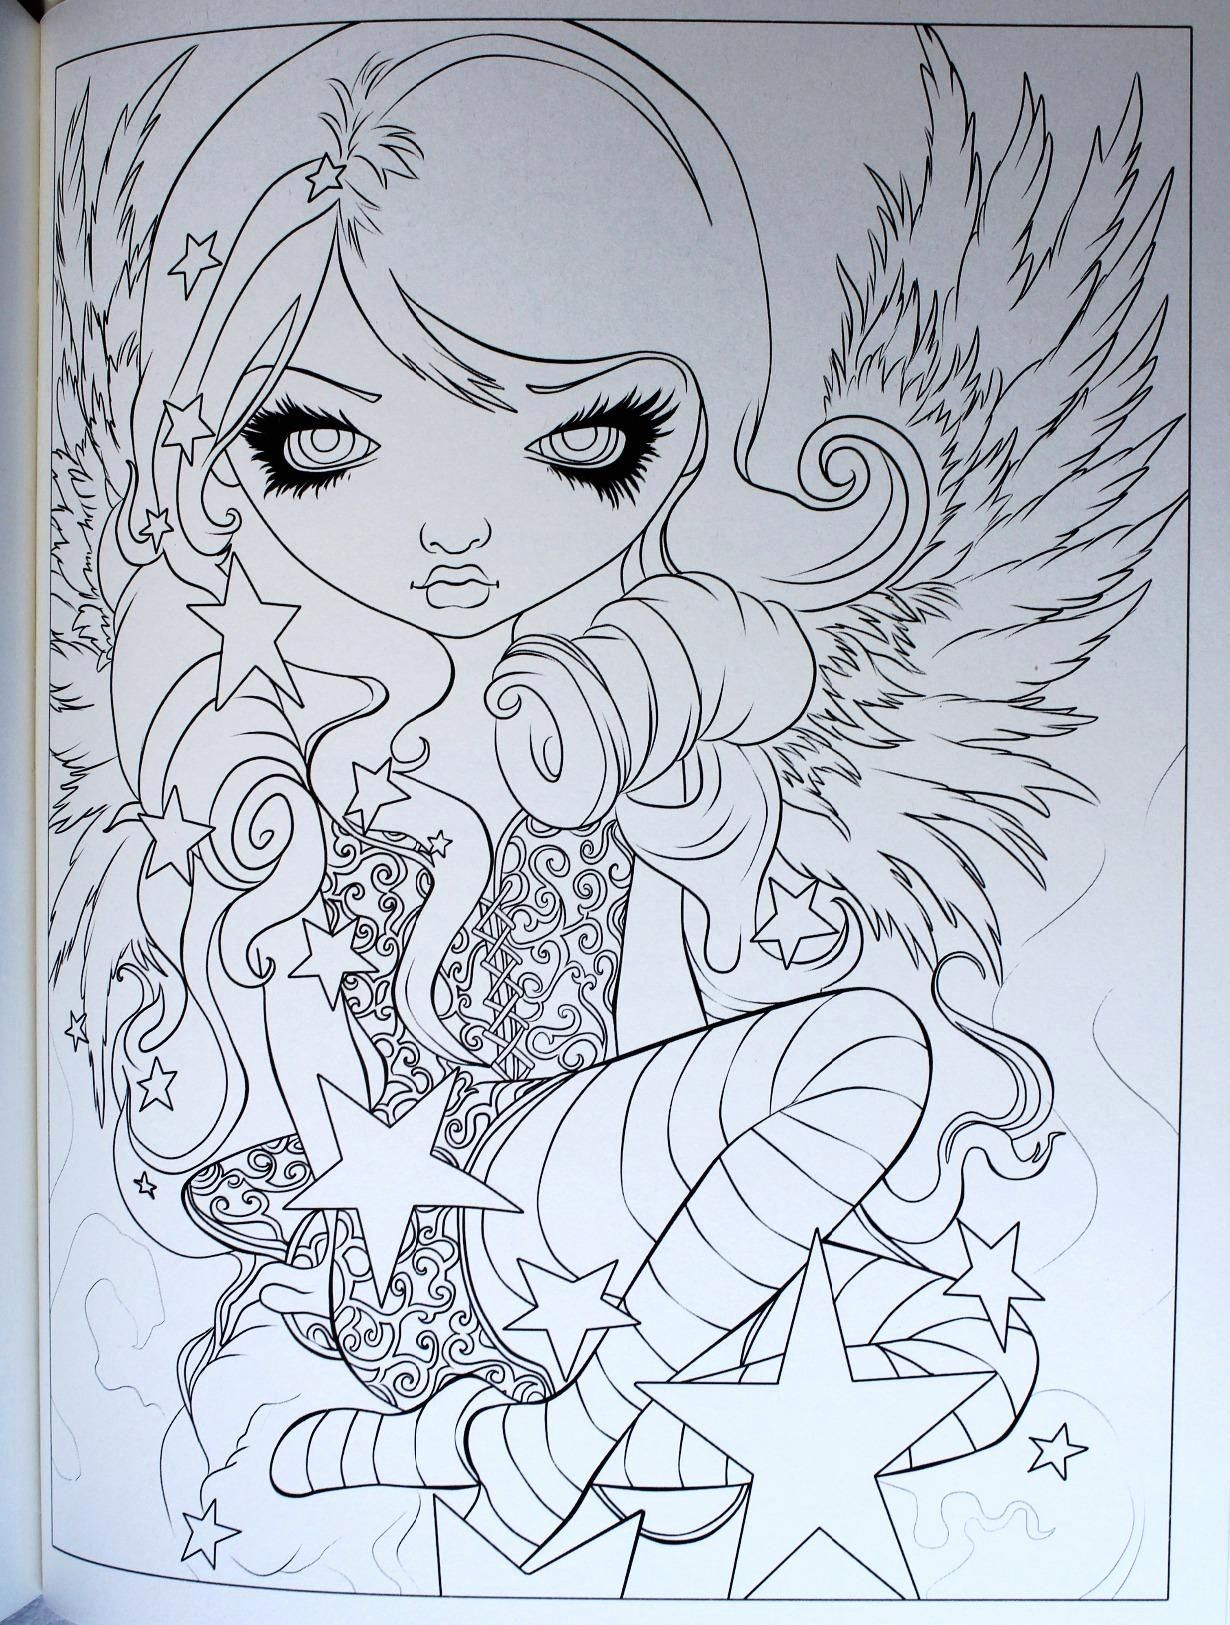 Jasmine Becket Griffith Coloring Book Best Of Amazon Jasmine Becket Griffith Coloring Book A Fantasy In 2020 Mermaid Coloring Book Coloring Books Fairy Coloring Pages